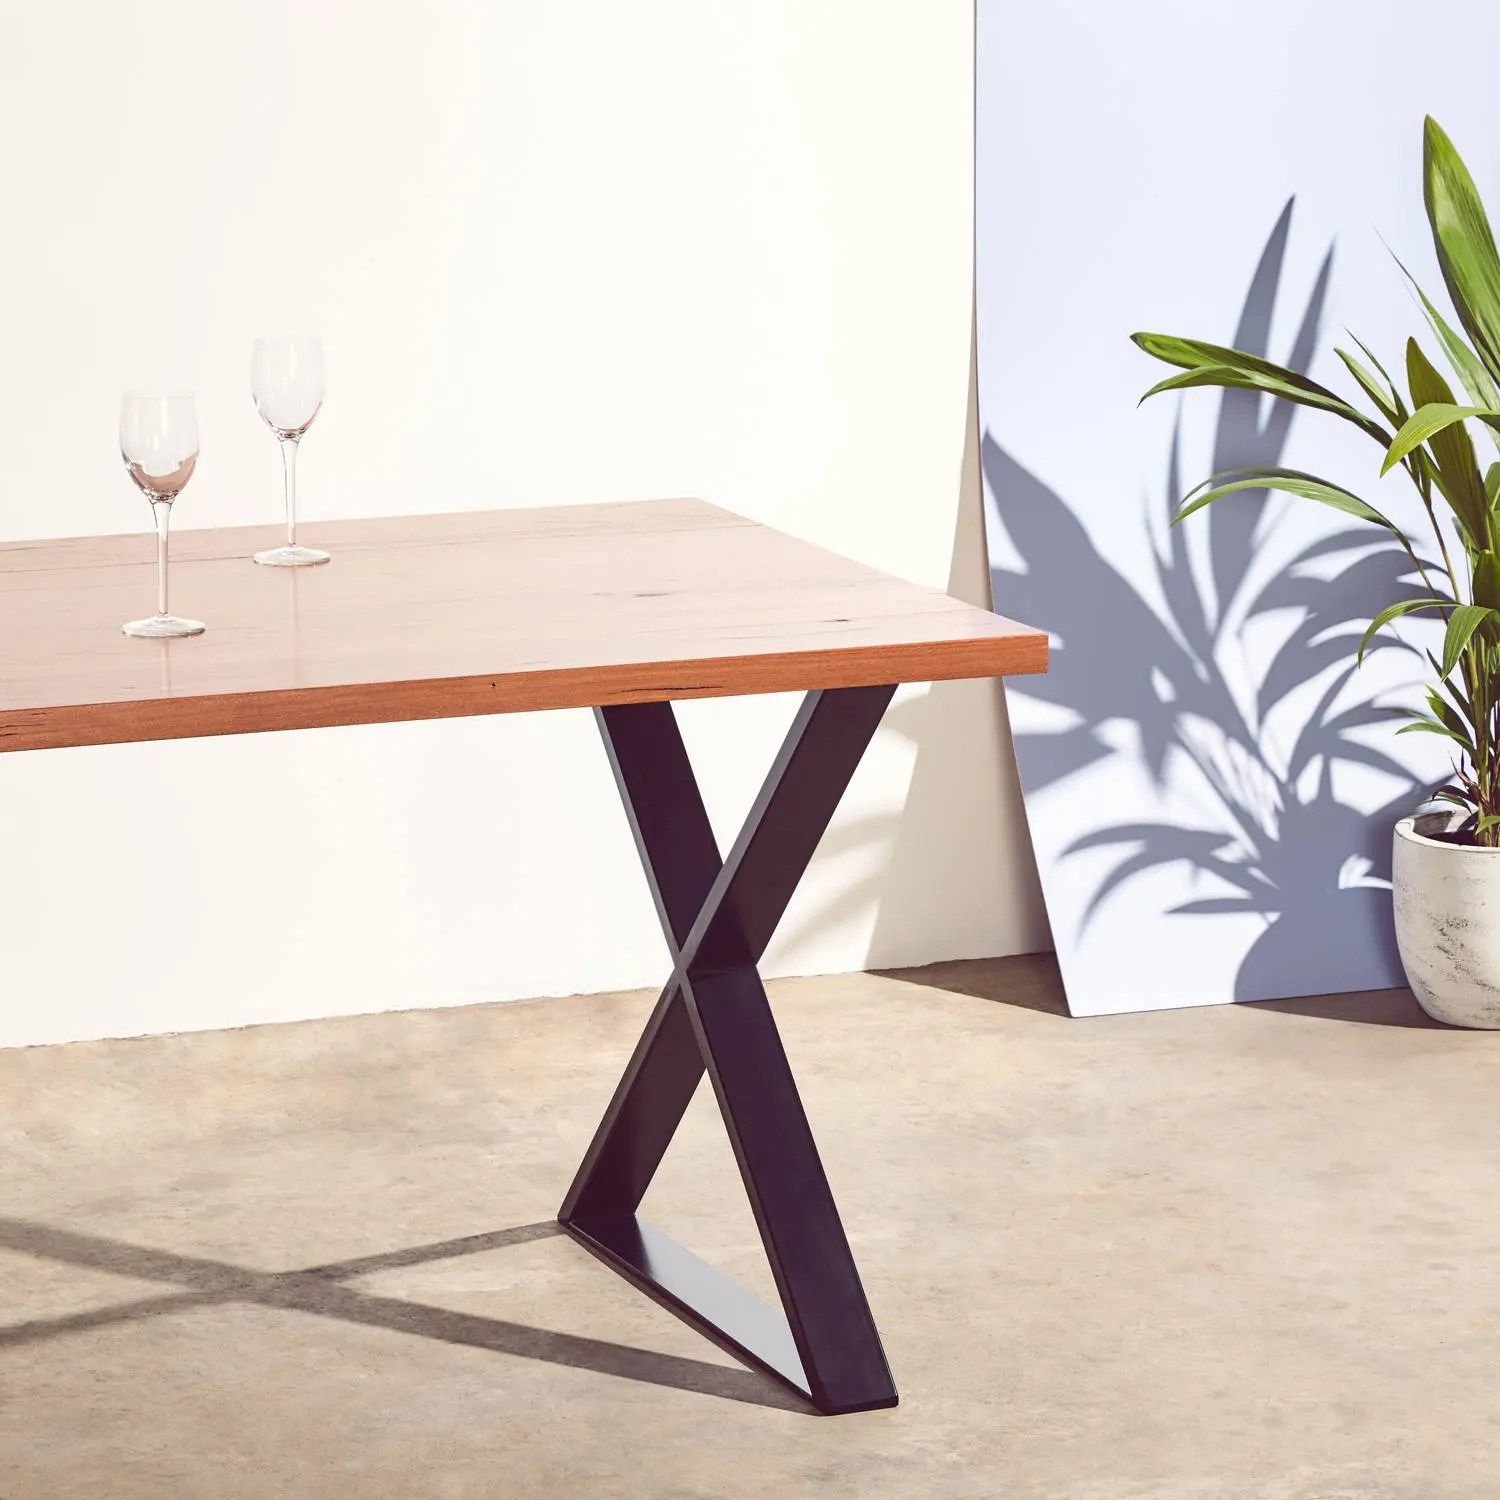 Hairpin Legs Melbourne Oakleigh Reclaimed Messmate Timber Table With X Table Legs